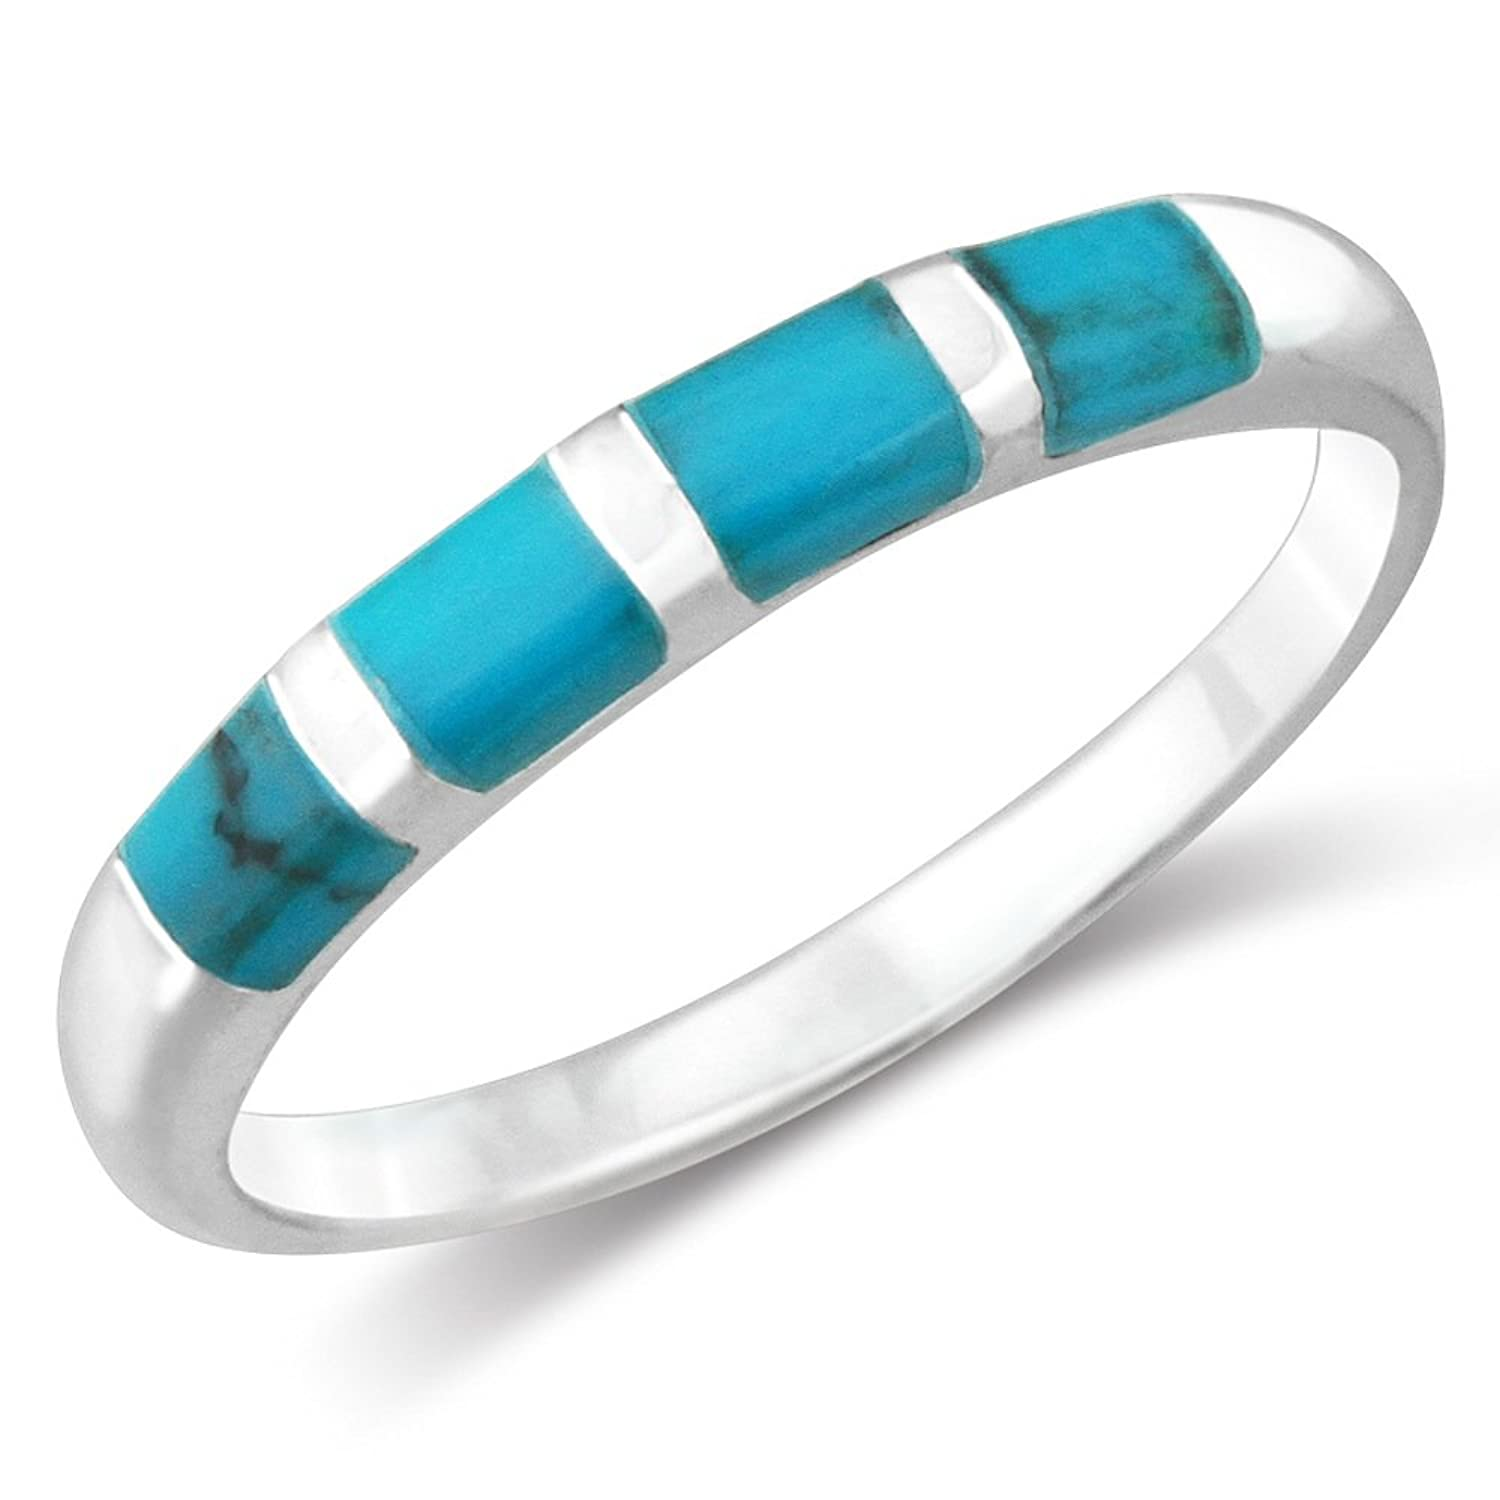 amazoncom 925 sterling silver simulated turquoise channel wedding band ring jewelry - Turquoise Wedding Ring